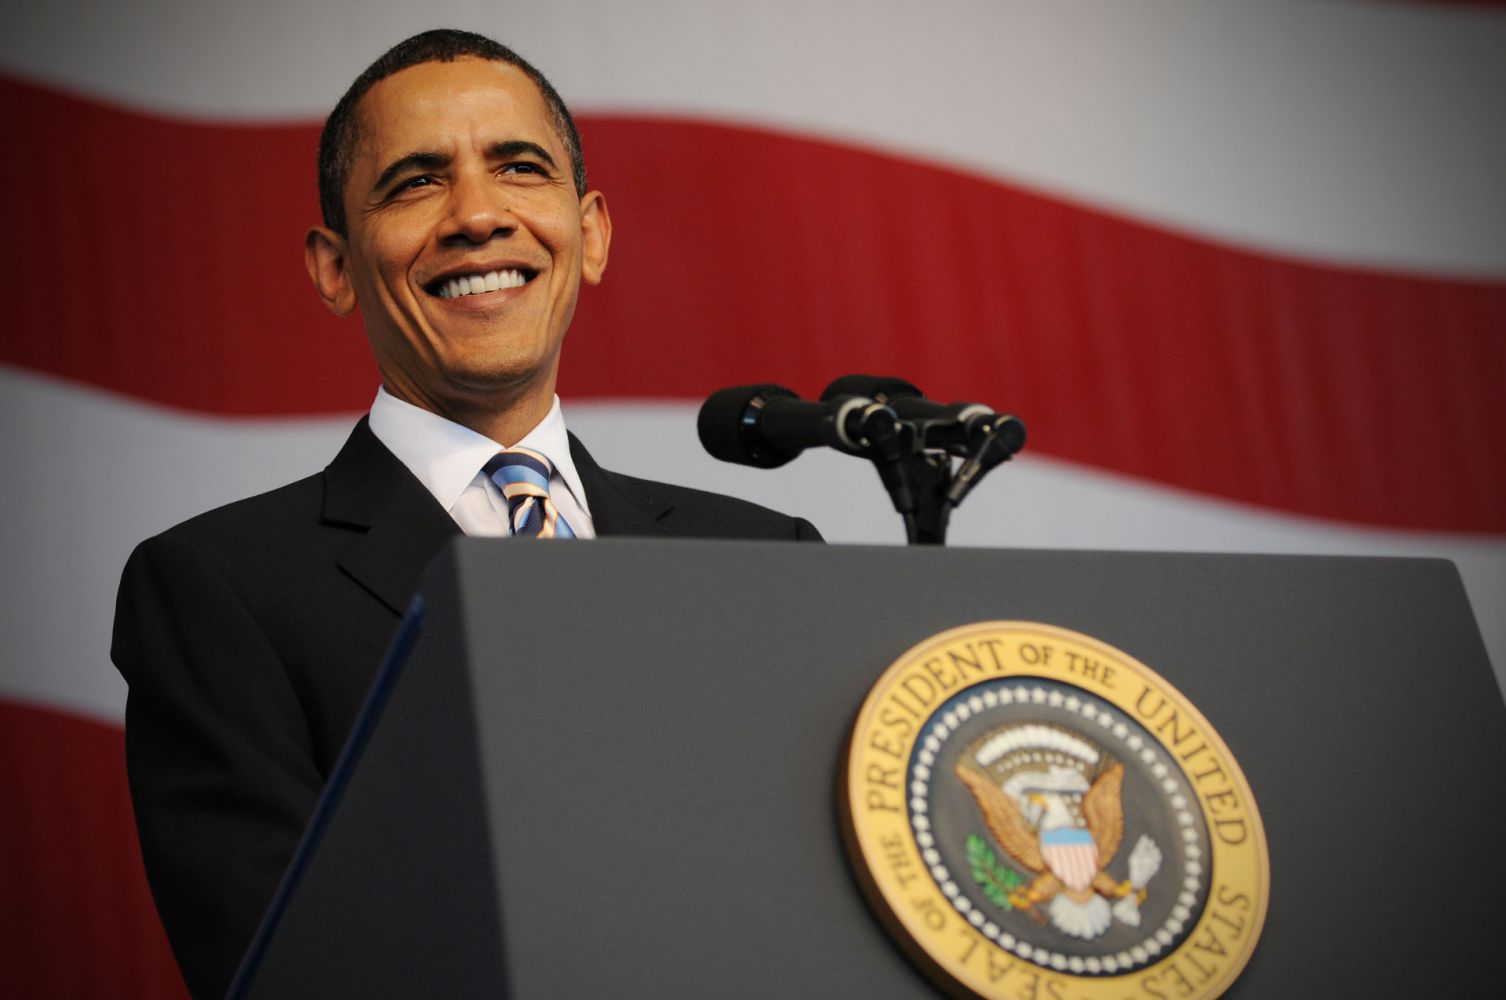 an examination of the presidency of barack obama the reconstructive president This story is part of a virtual museum of president barack obama's presidency in five parts — the first black president, commander in chief.